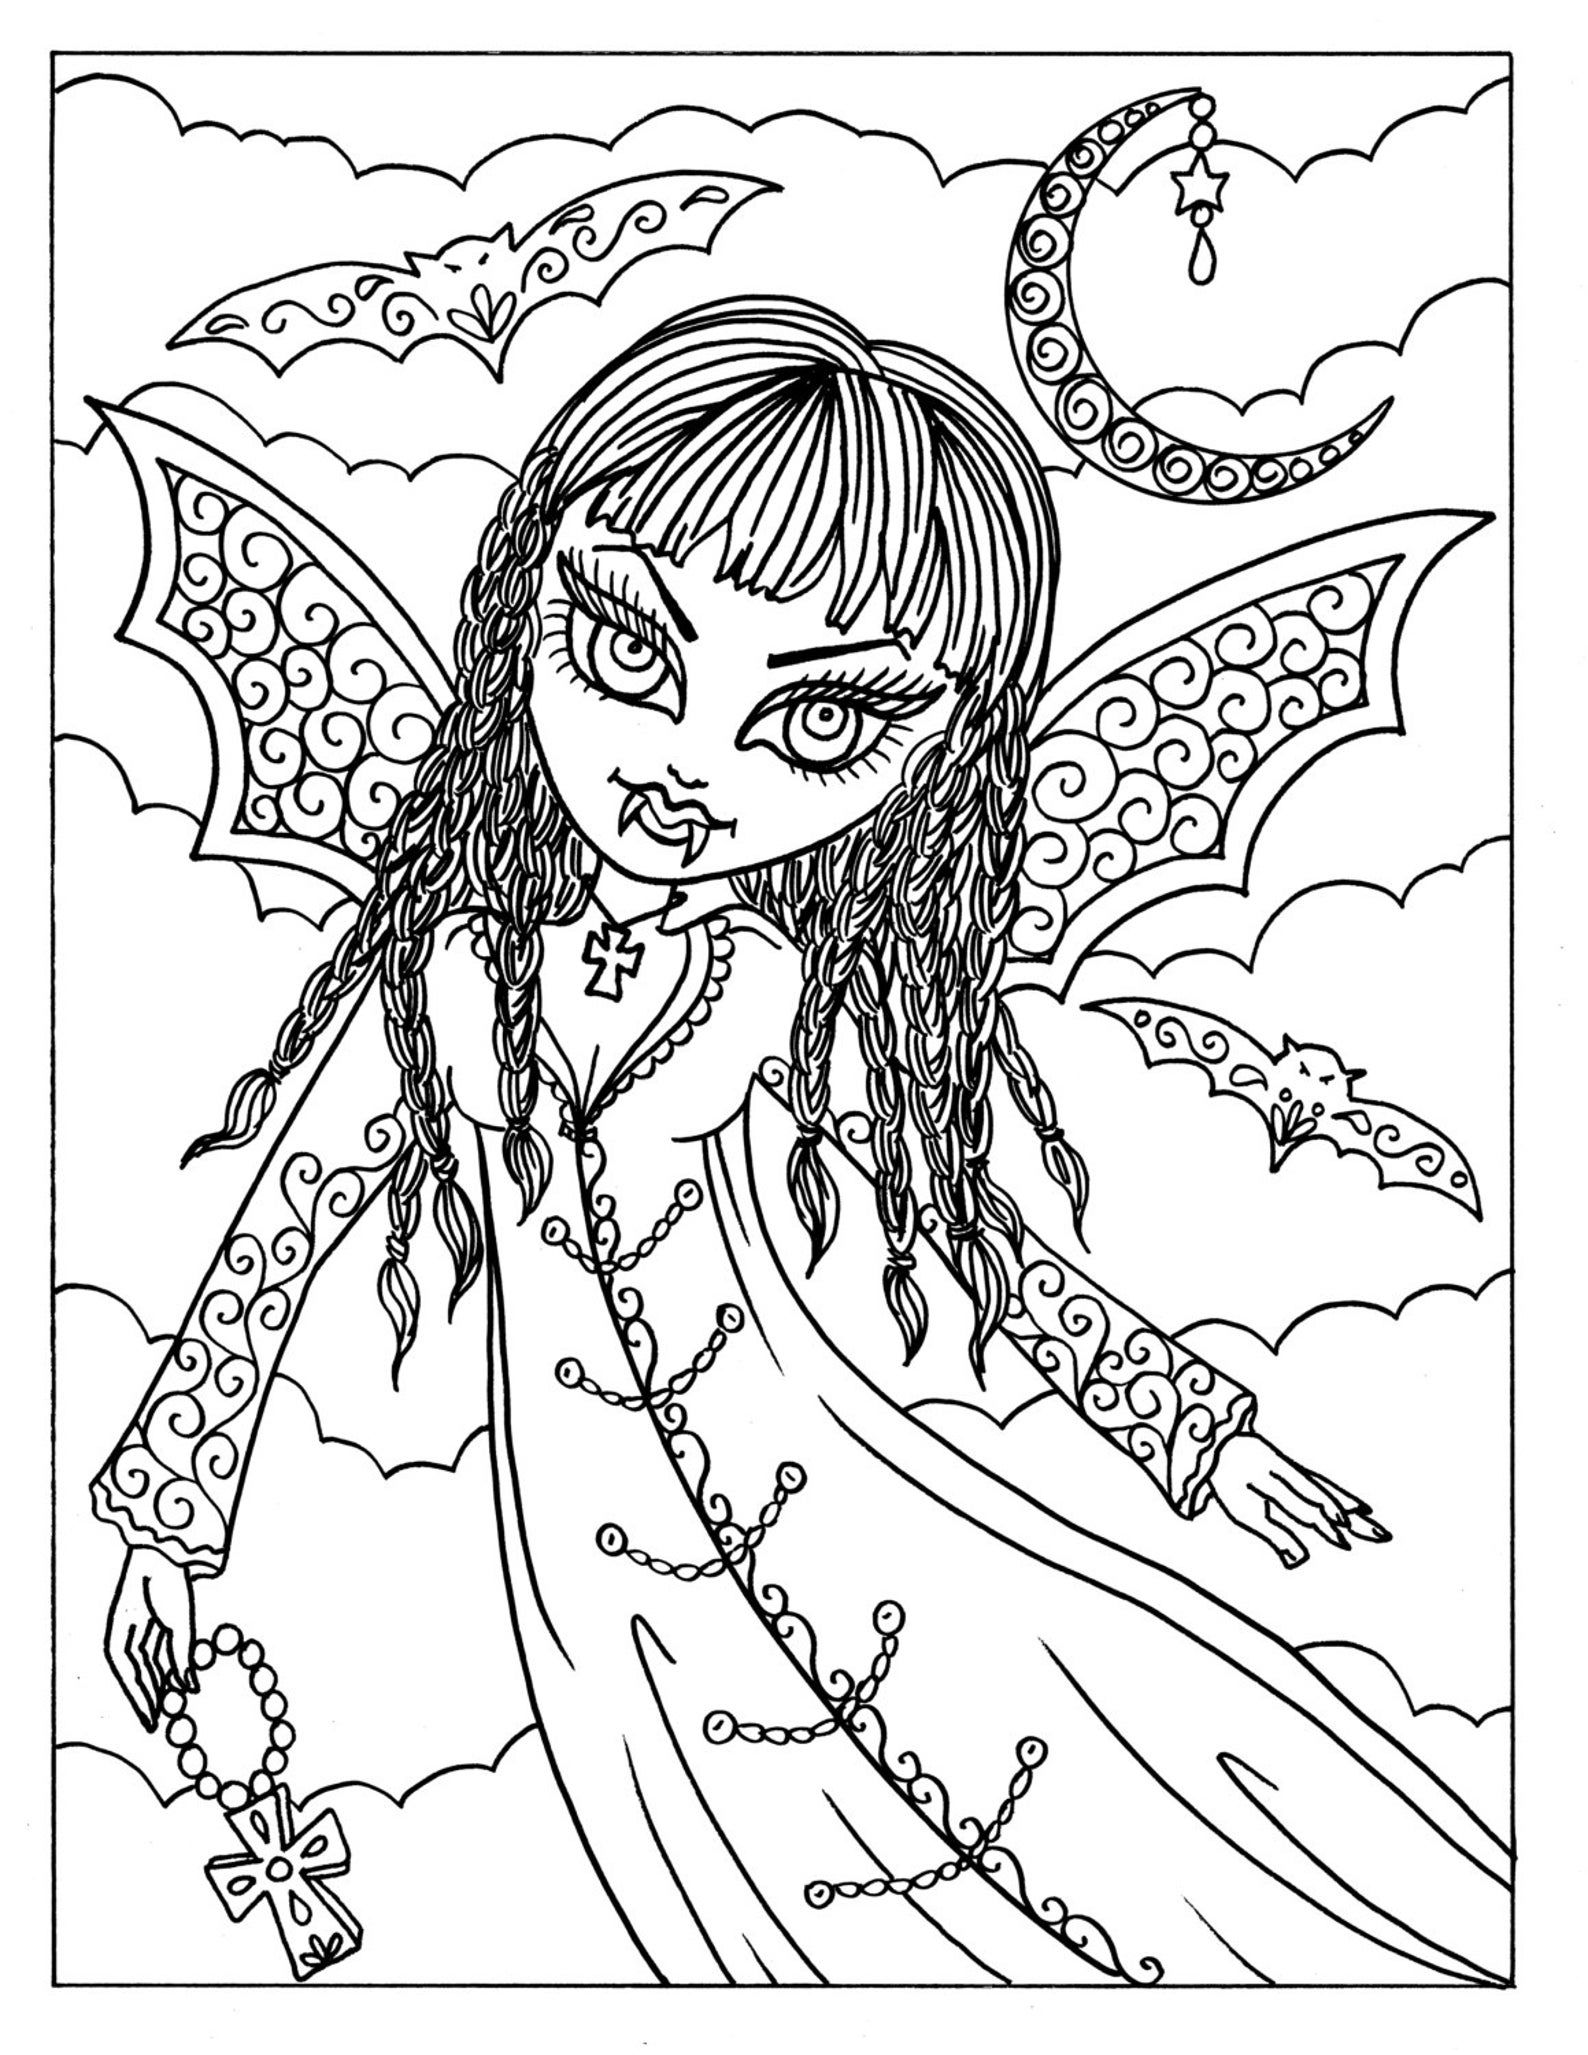 5 Pages Vampire Renardes A Couleur Instantane Telecharger Etsy Mermaid Coloring Pages Halloween Coloring Pages Printable Cute Coloring Pages